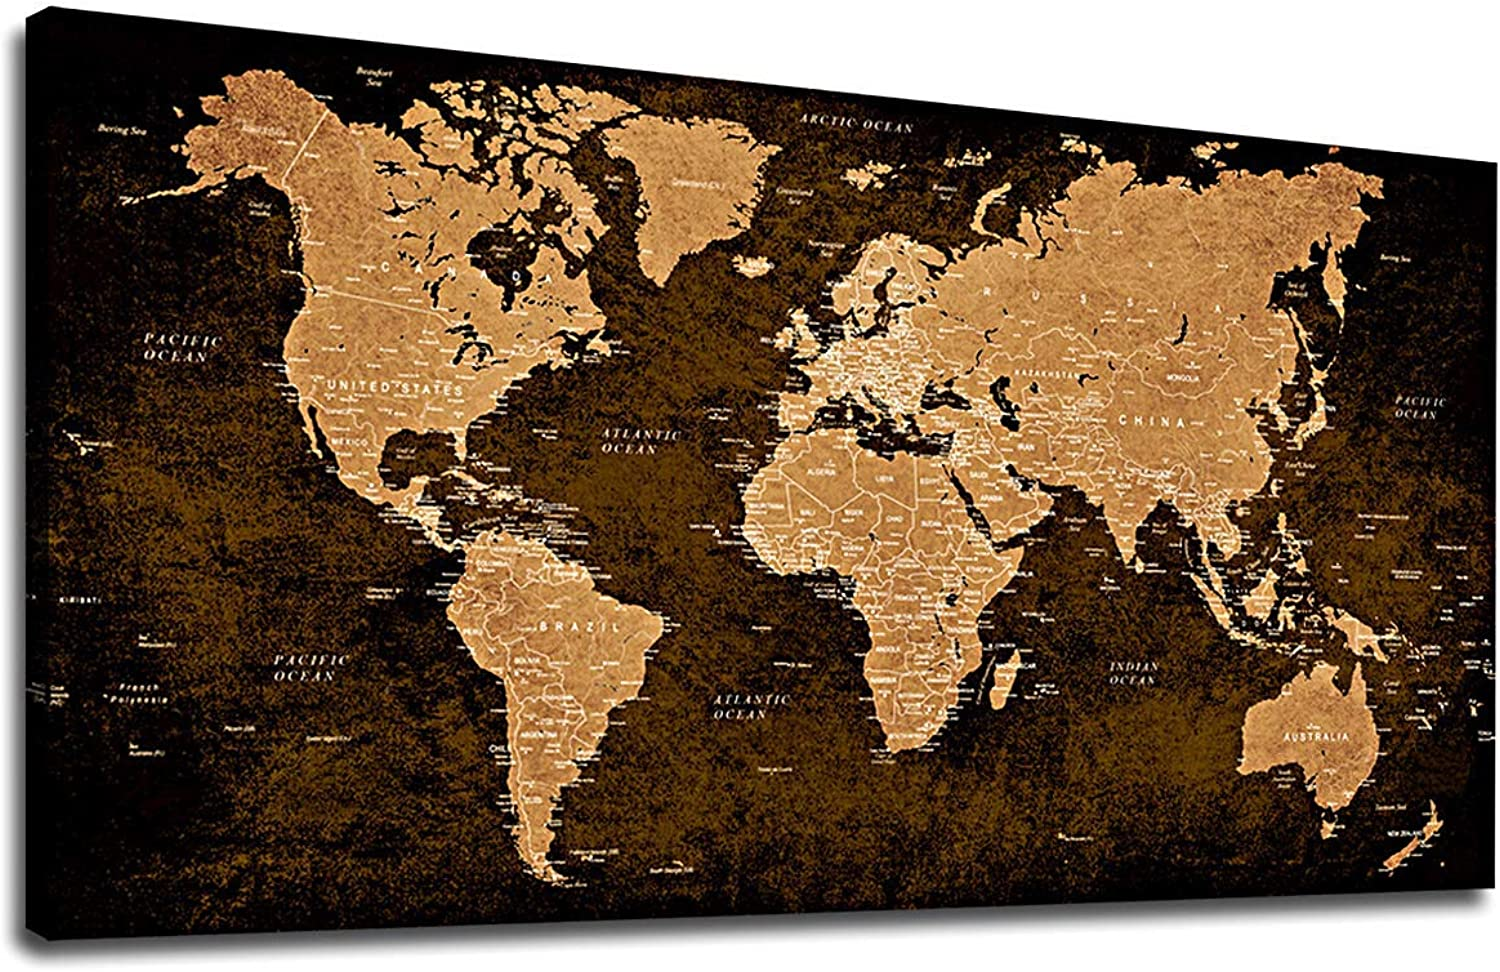 Vintage World Map Wall Art Bedroom Living Room Decoration 20  x 40  Canvas Wall Art Antiqued Map of The World Painting Prints Modern Artwork Picture for Office Home Wall Decor